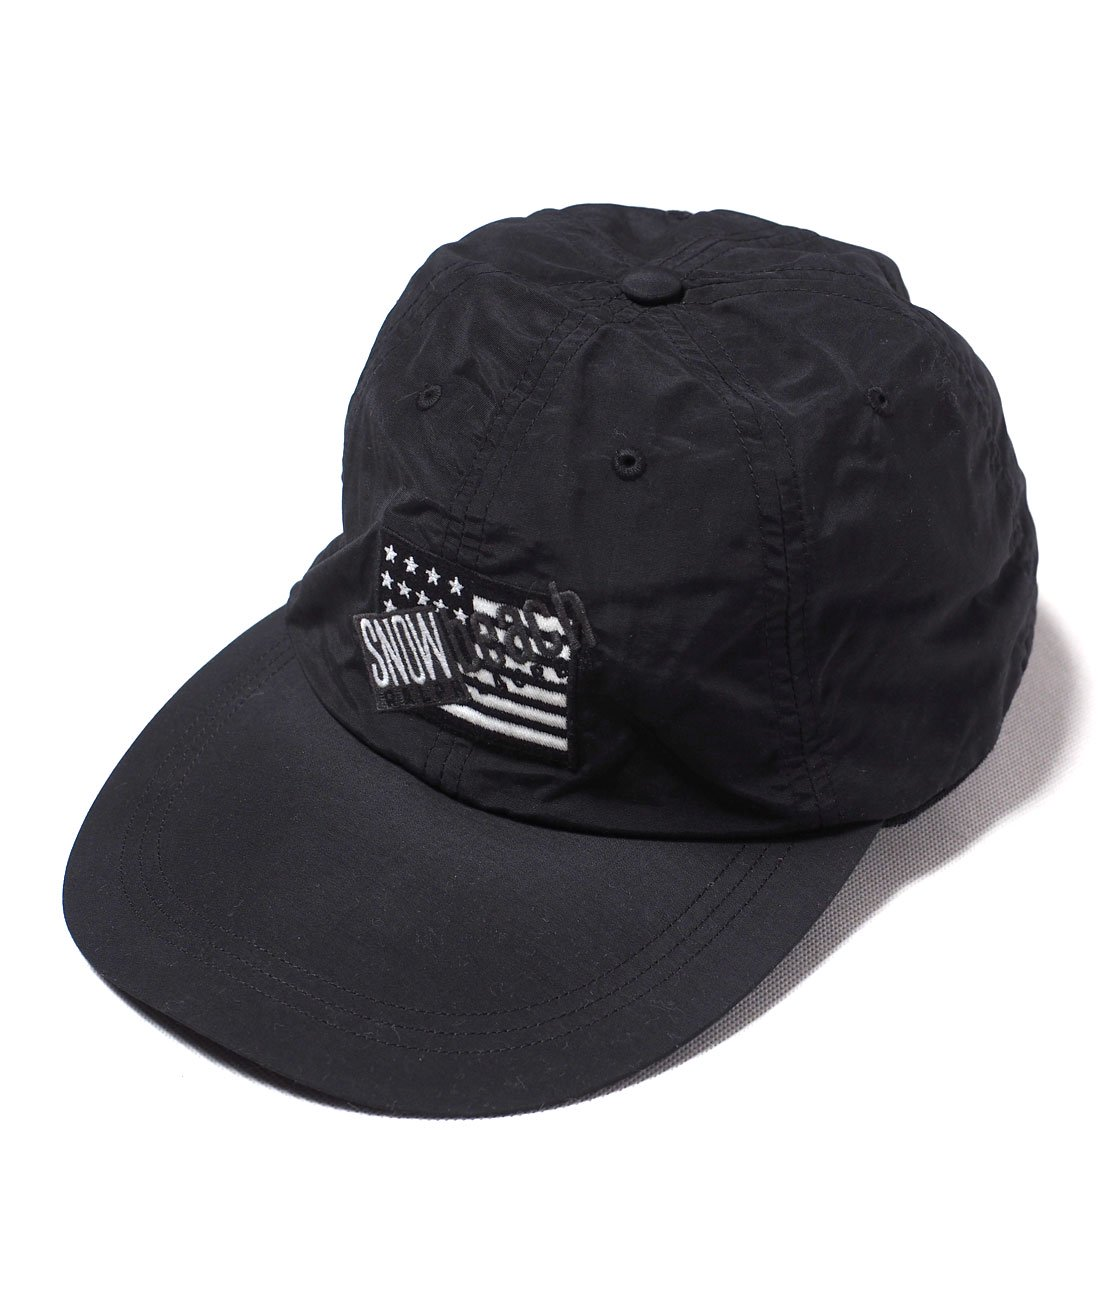 Ralph Lauren SNOW BEACH FITTED CAP - BLACK キャップ - HUNKY DORY d2da145d8b4